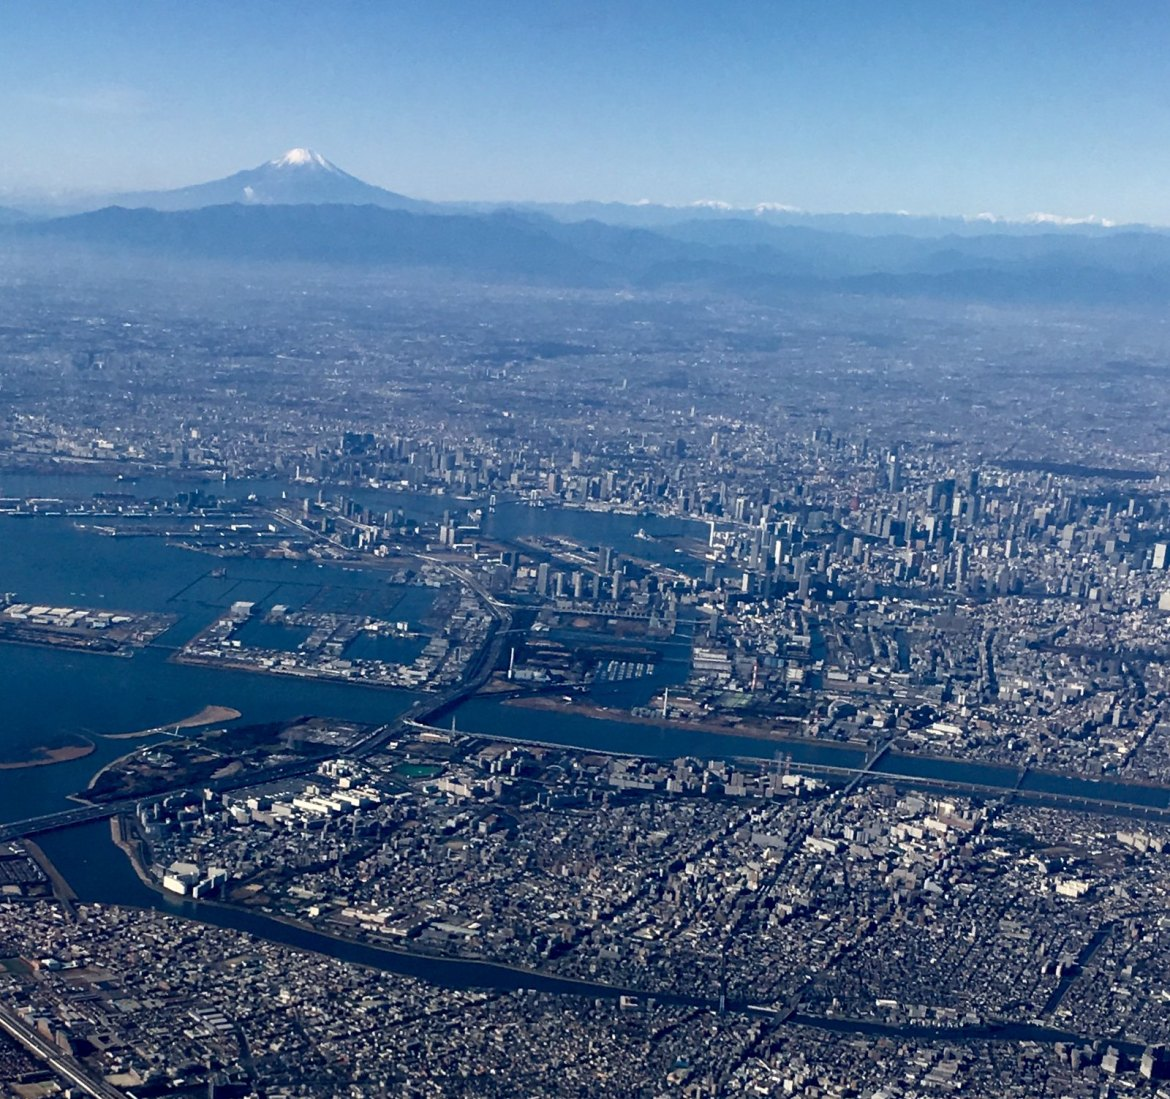 Haneda Takeoff, Mount Fuji view